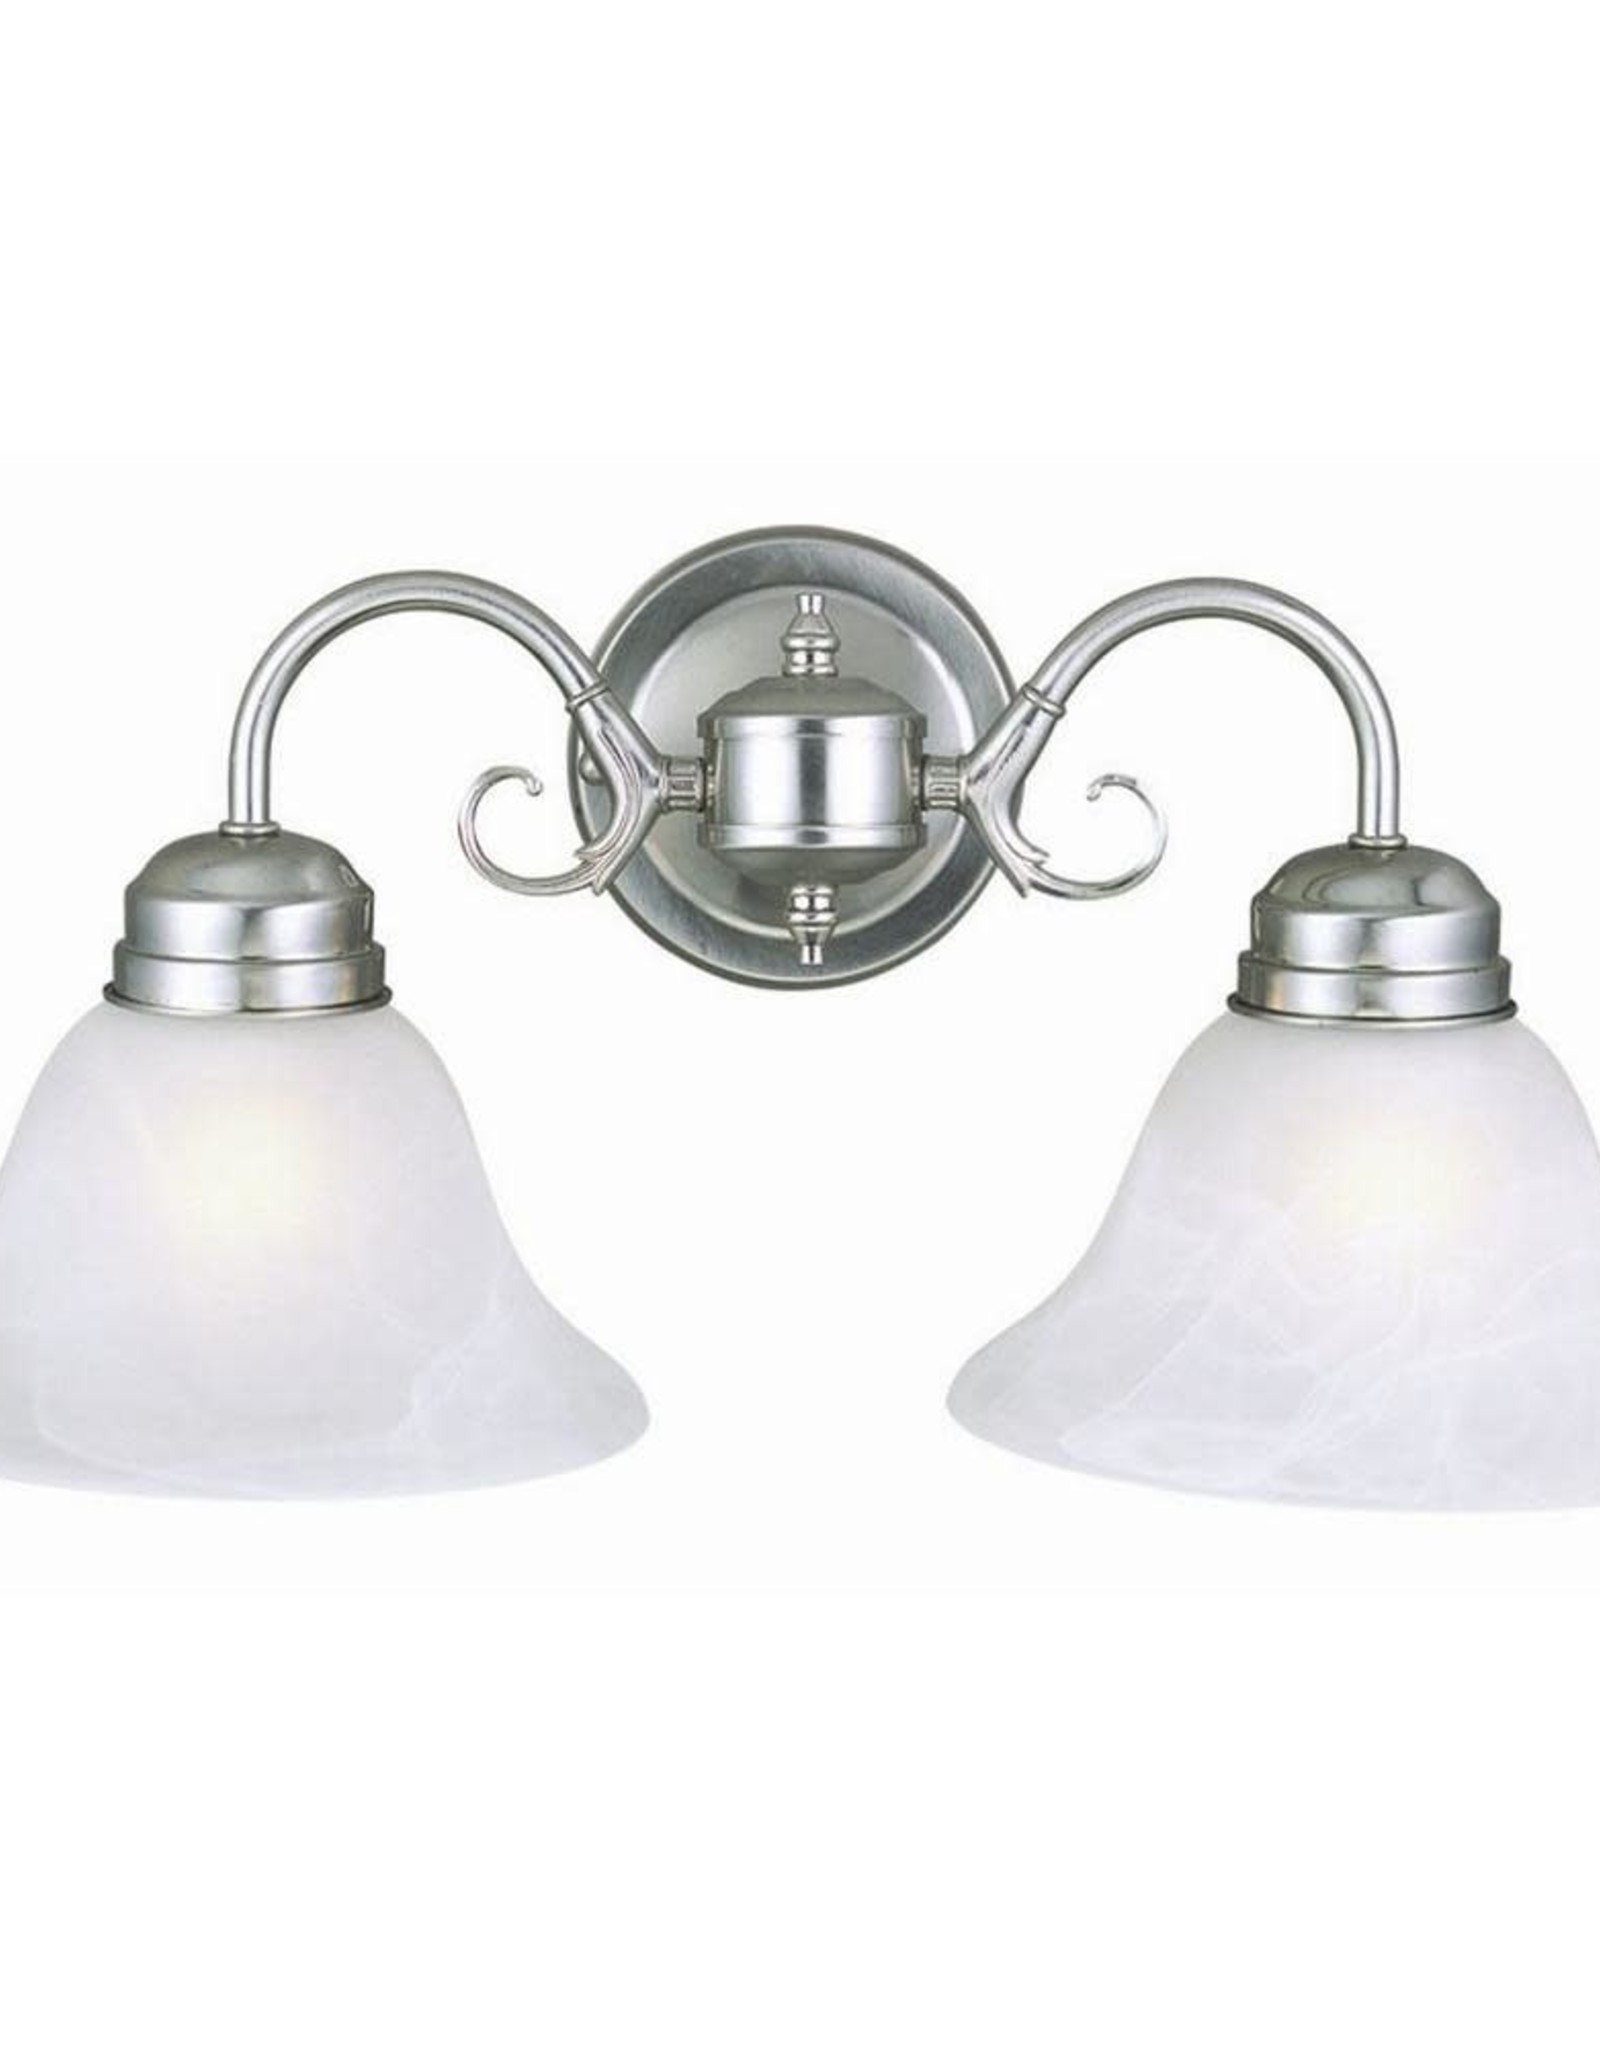 Millbridge 2-Light Satin Nickel Sconce with Alabaster Glass Shade